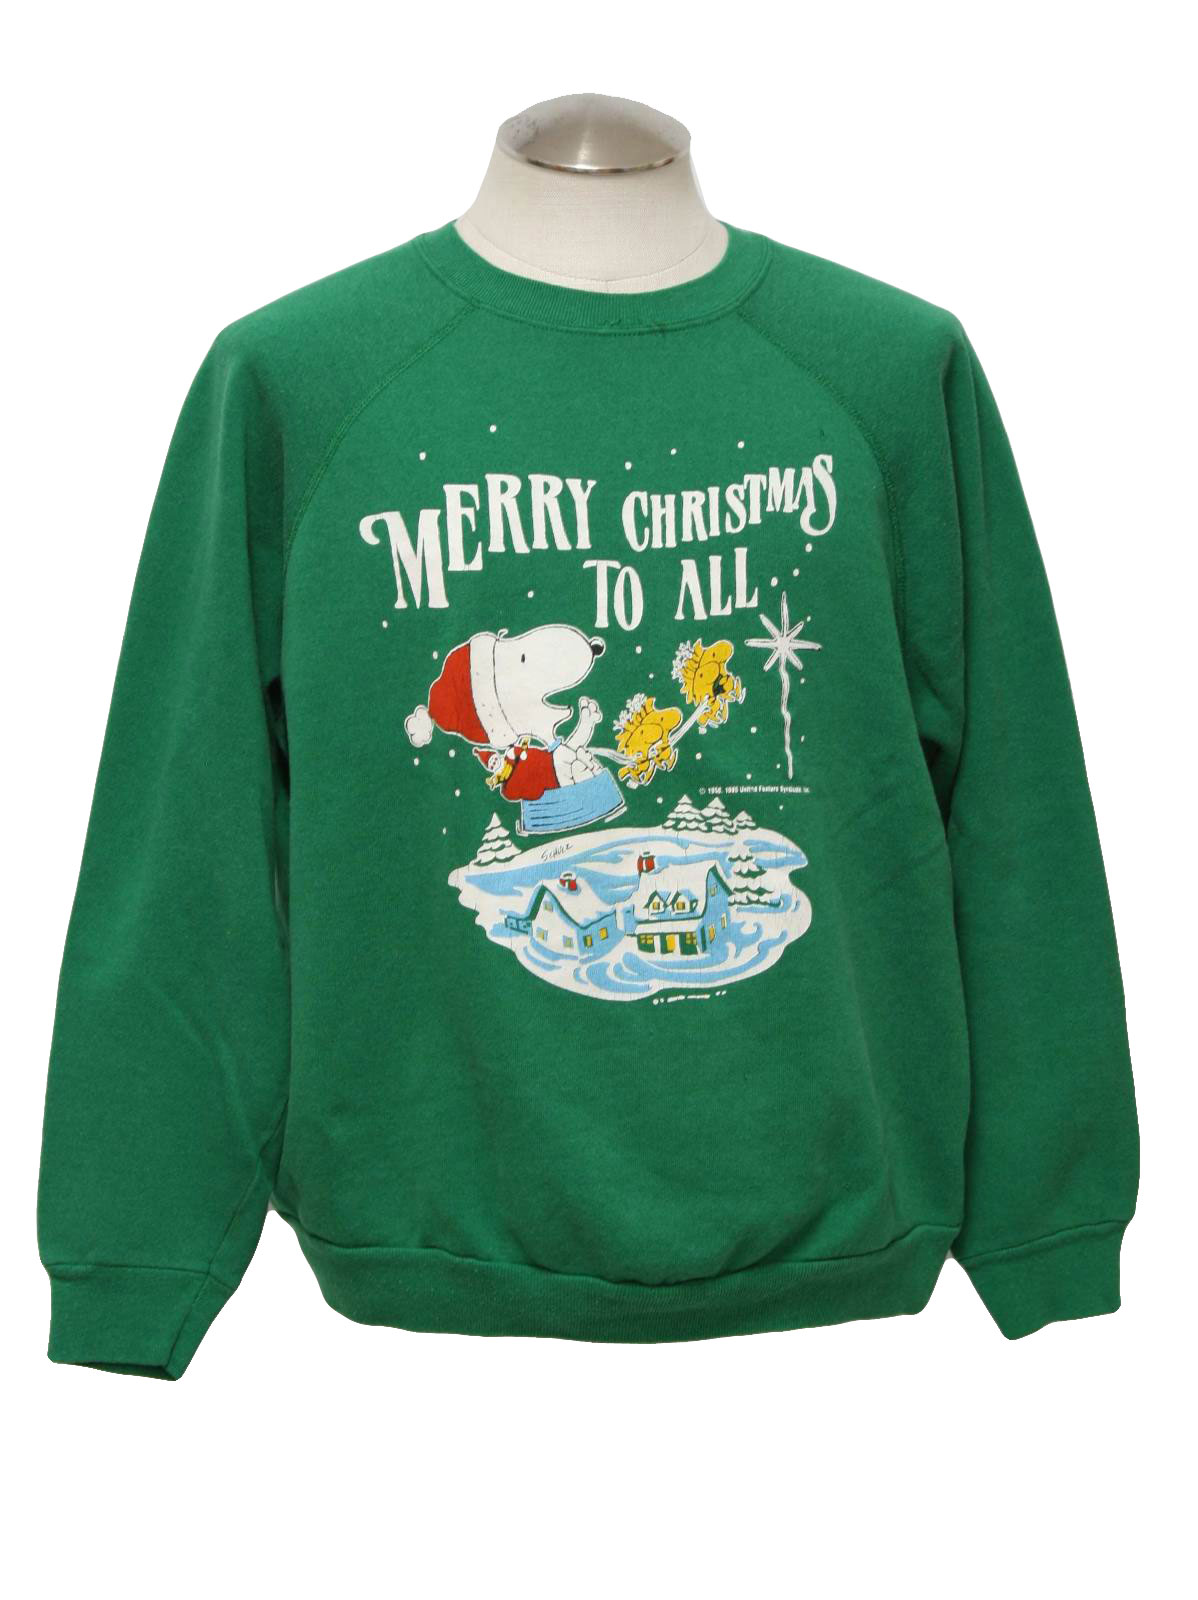 1980s vintage snoopy ugly christmas sweatshirt 80s authentic vintage artex unisex green background cotton acrylic blend pullover longsleeve ugly - Snoopy Christmas Shirt